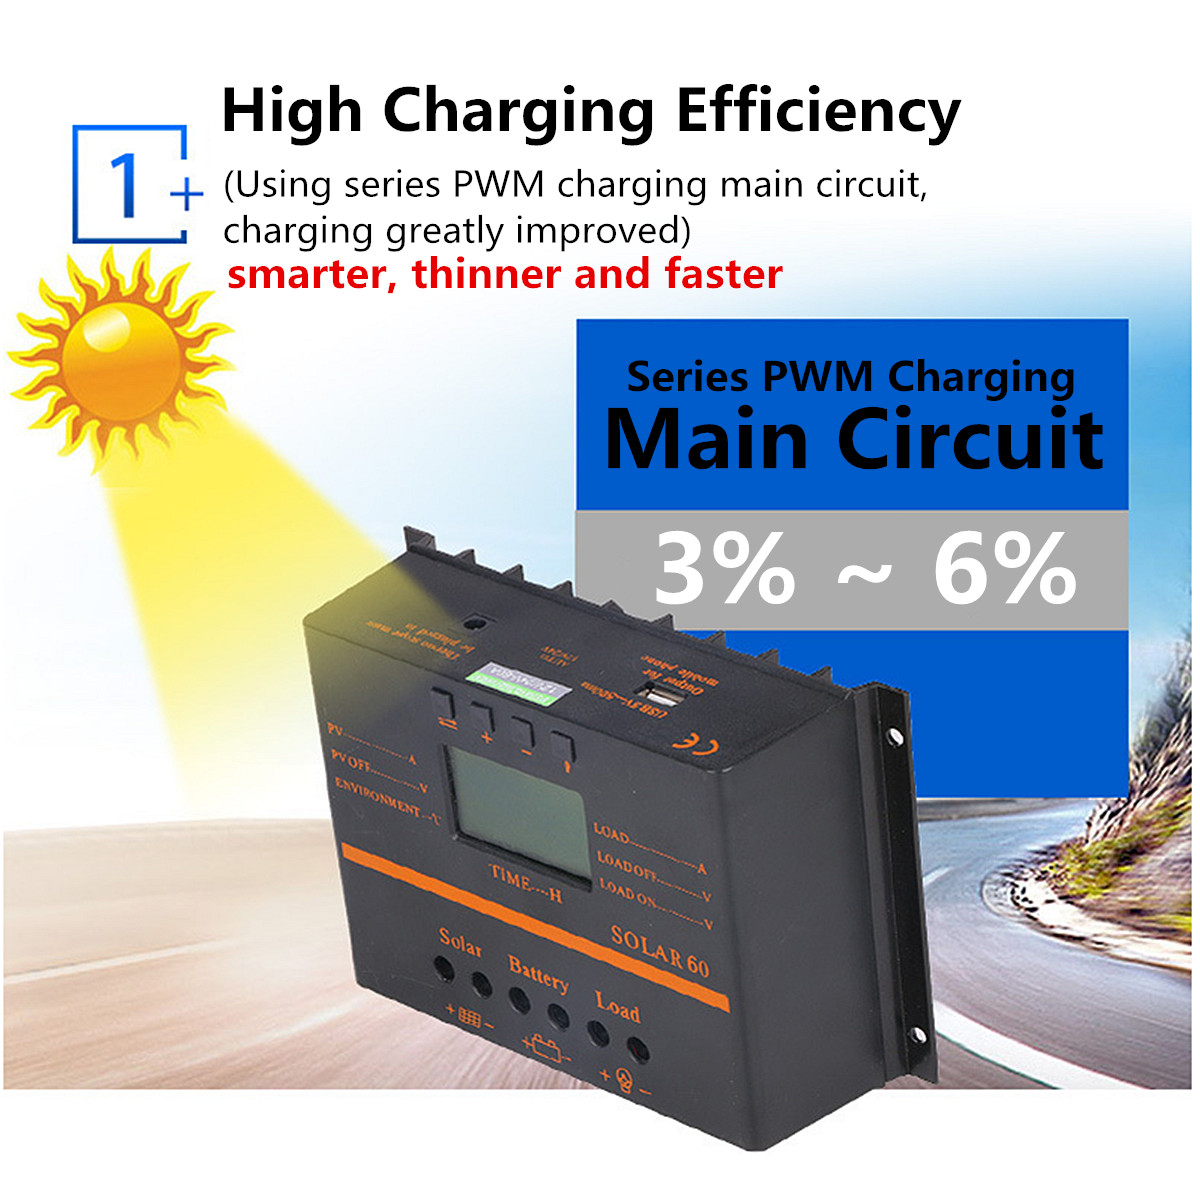 Solar Panel Charge Controller Battery 12V/24V Auto LCD Display PWM Regulator USB 40A/50A/60A/80A Overload Protection Automatic 50a 40a 30a 20a 10amps 12v 24v automatic solar cell charge controller pwm solar photovoltaic regulator lcd display 5v usb